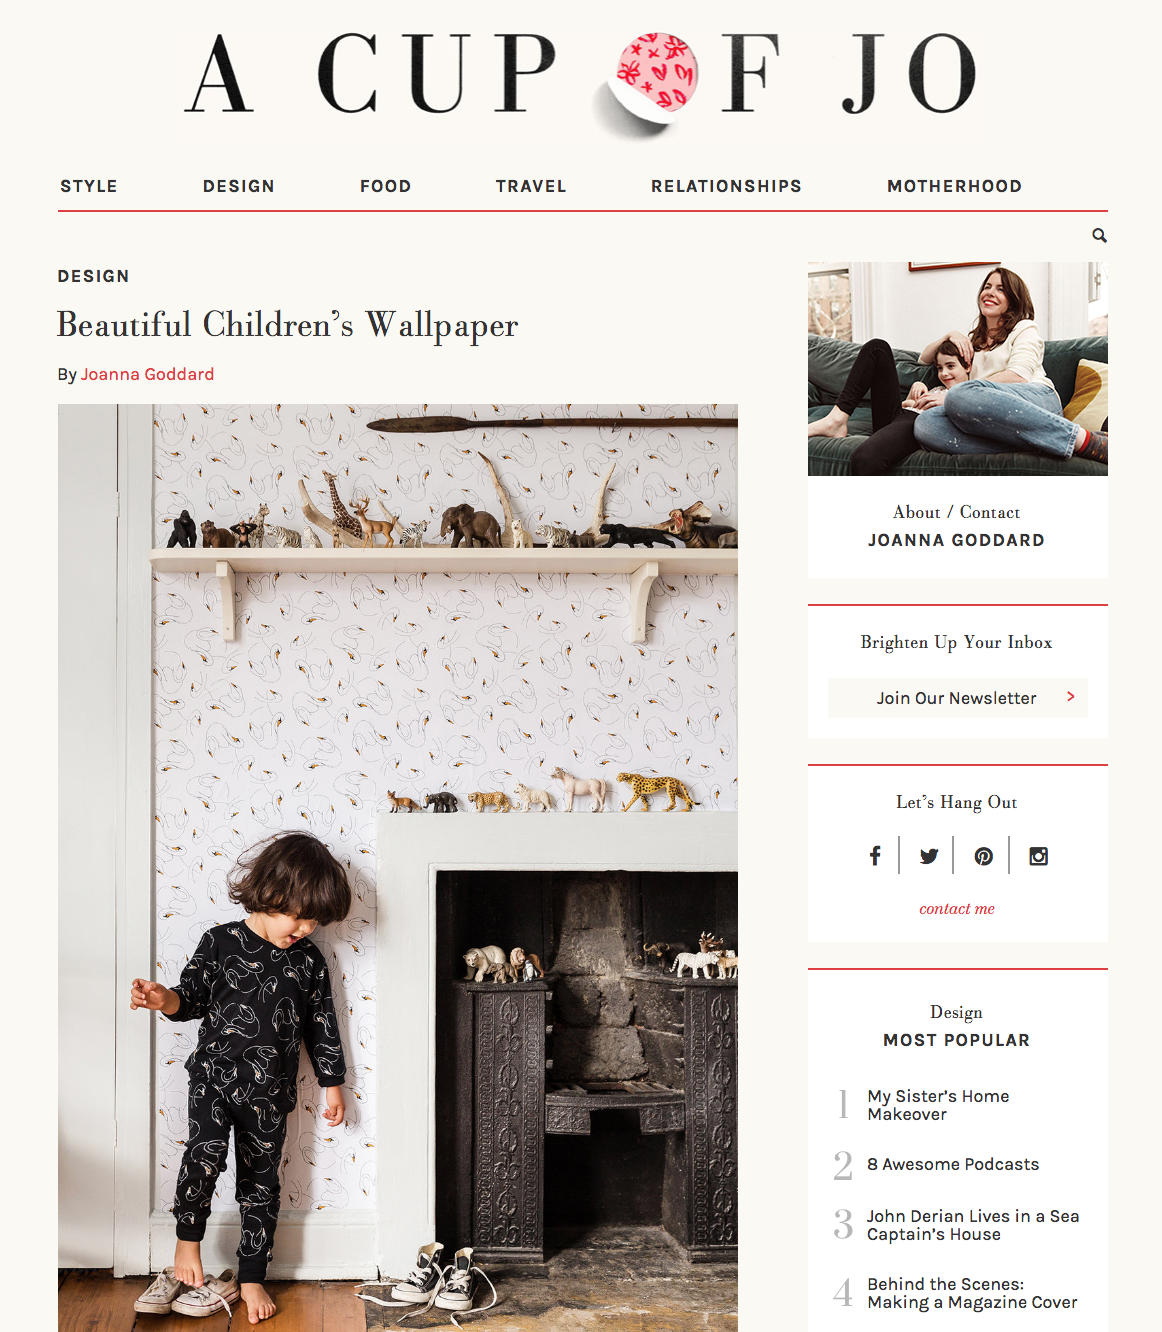 Swansy Wallpaper featured on Cup of Jo May 2019